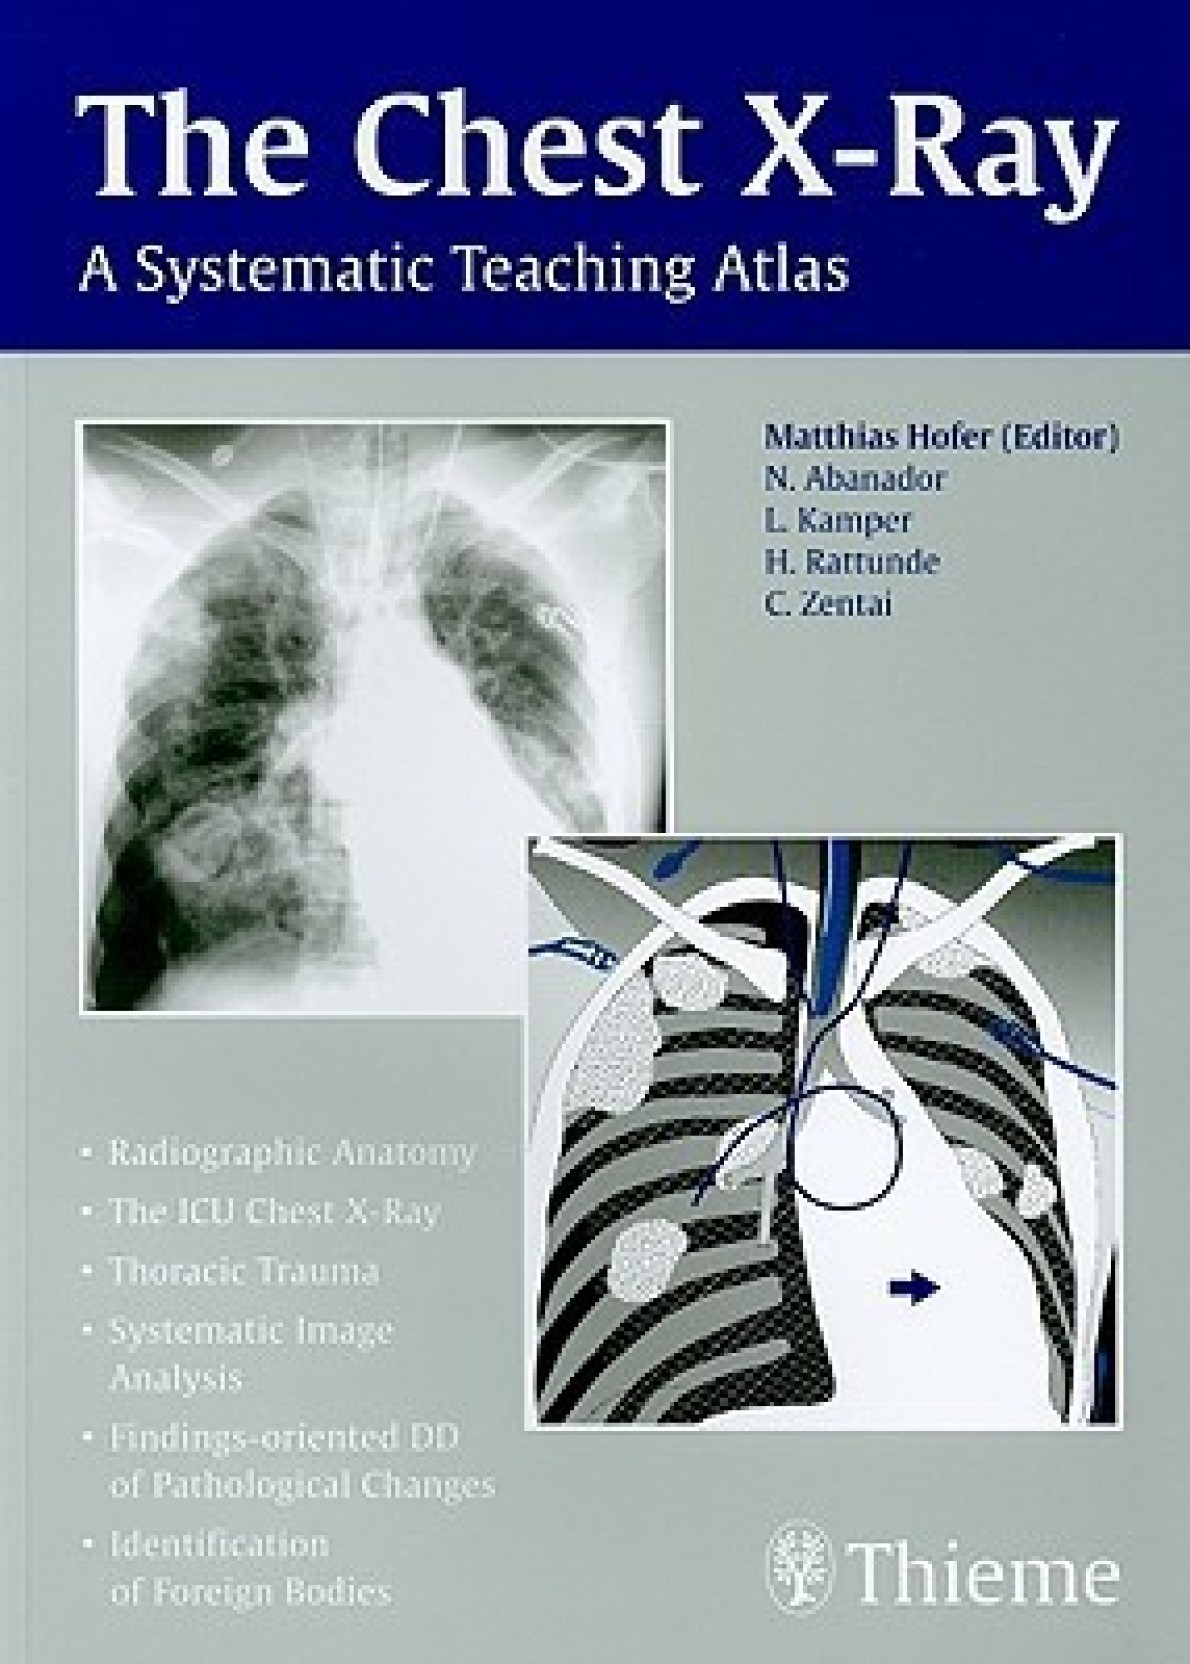 ... Systematic Teaching Atlas 1st Edition. Share